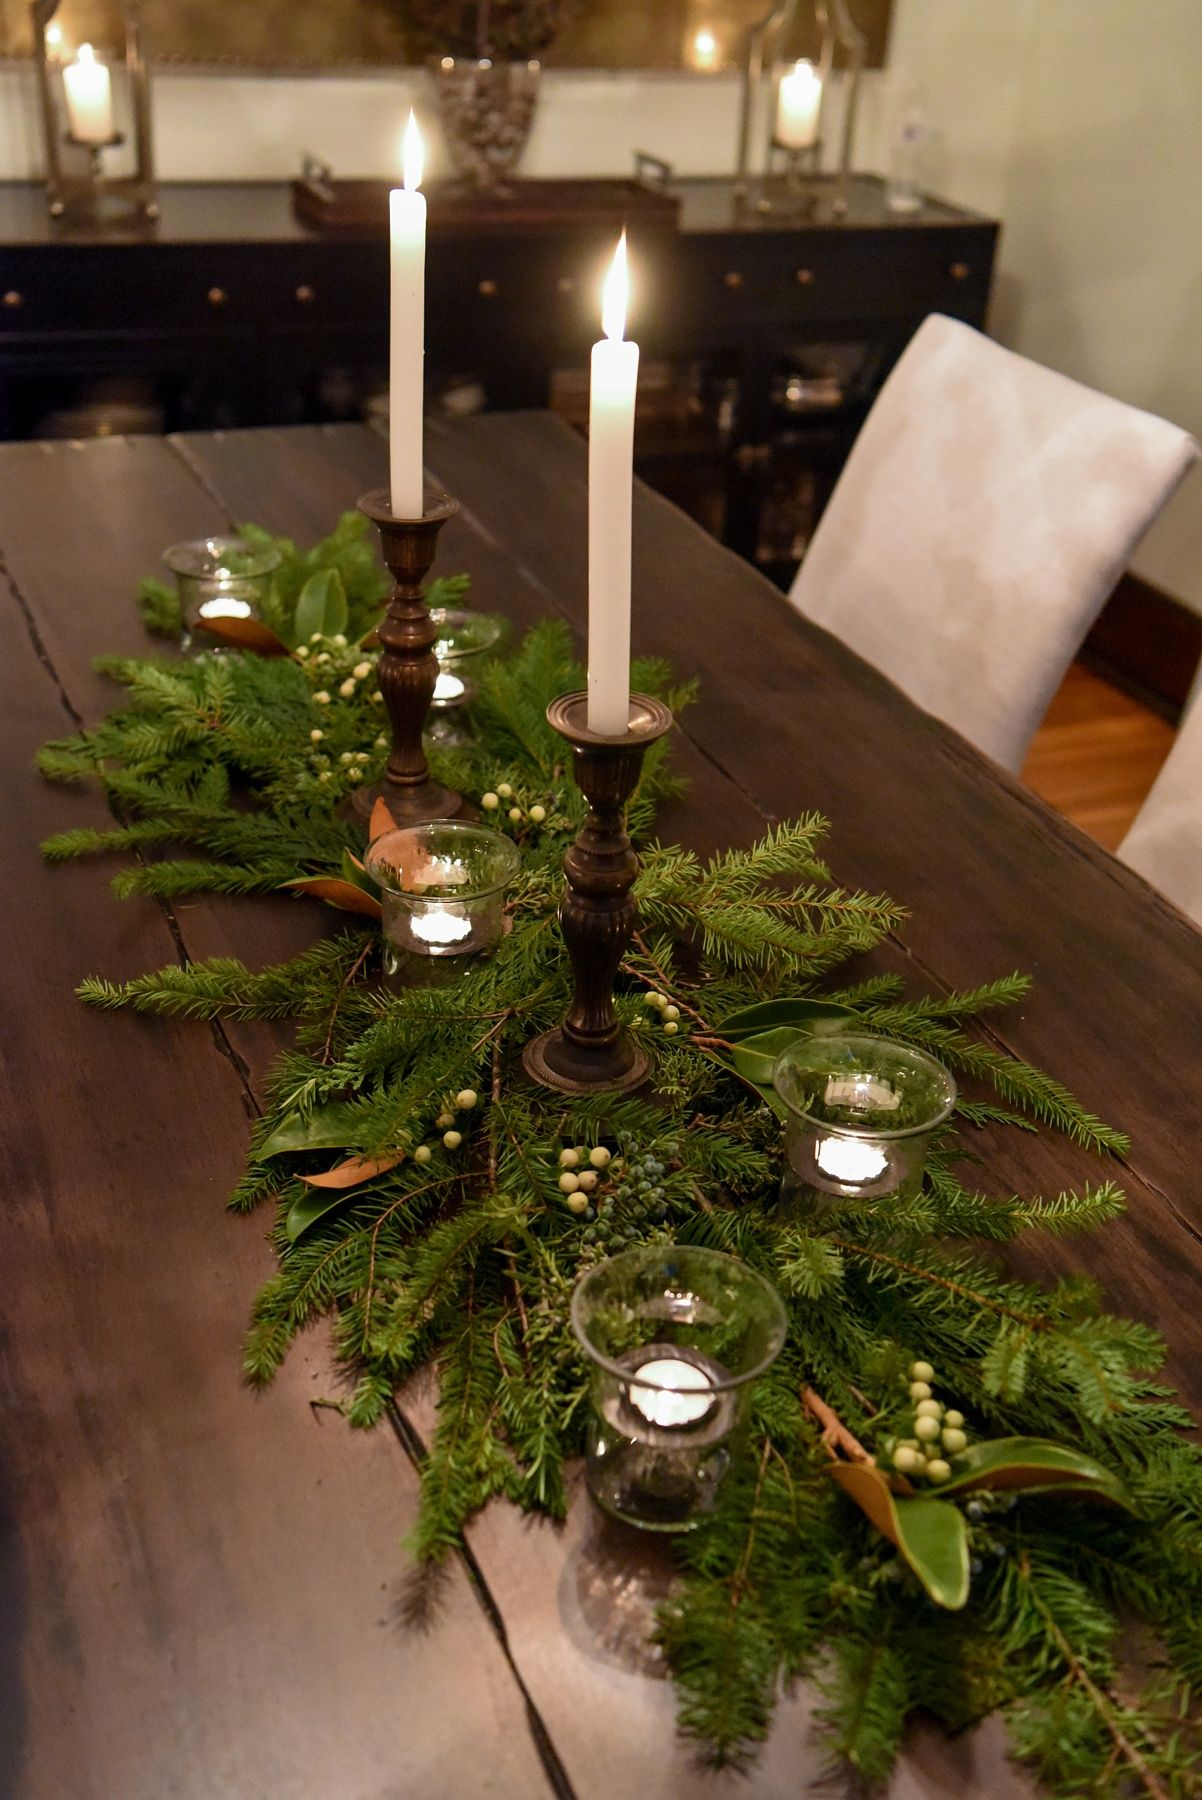 8 Approaches To Holiday Decor Each Festive Bright Christmas Table Decorations Christmas Centerpieces Christmas Table Centerpieces